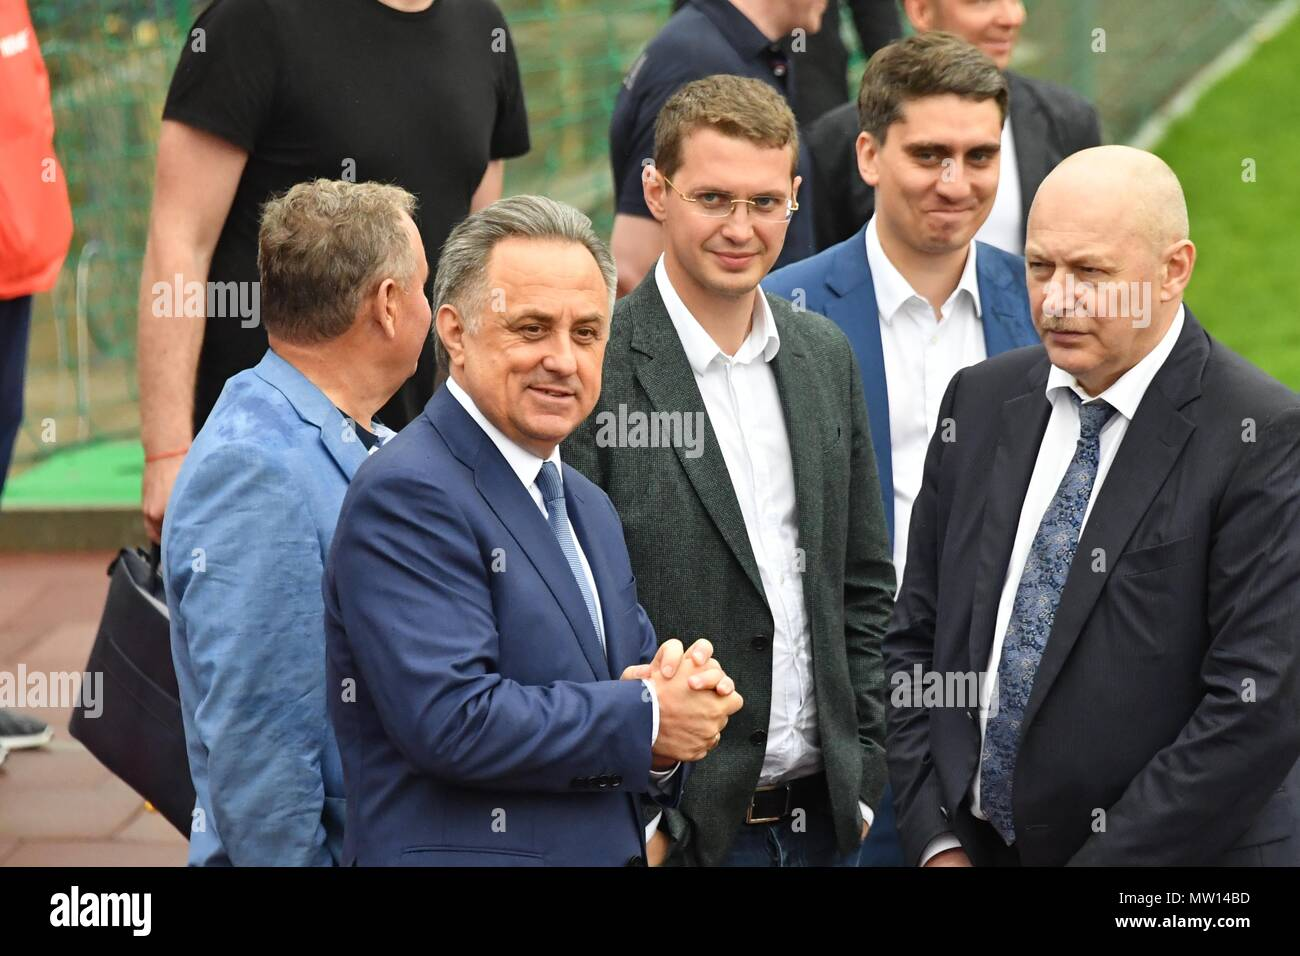 May 18, 2018. - Russia, Moscow Region, Novogorsk. - Russian national football team holds training session. In picture: President of the Russian Football Union, Deputy Prime Minister Vitaly Mutko (left). - Stock Image